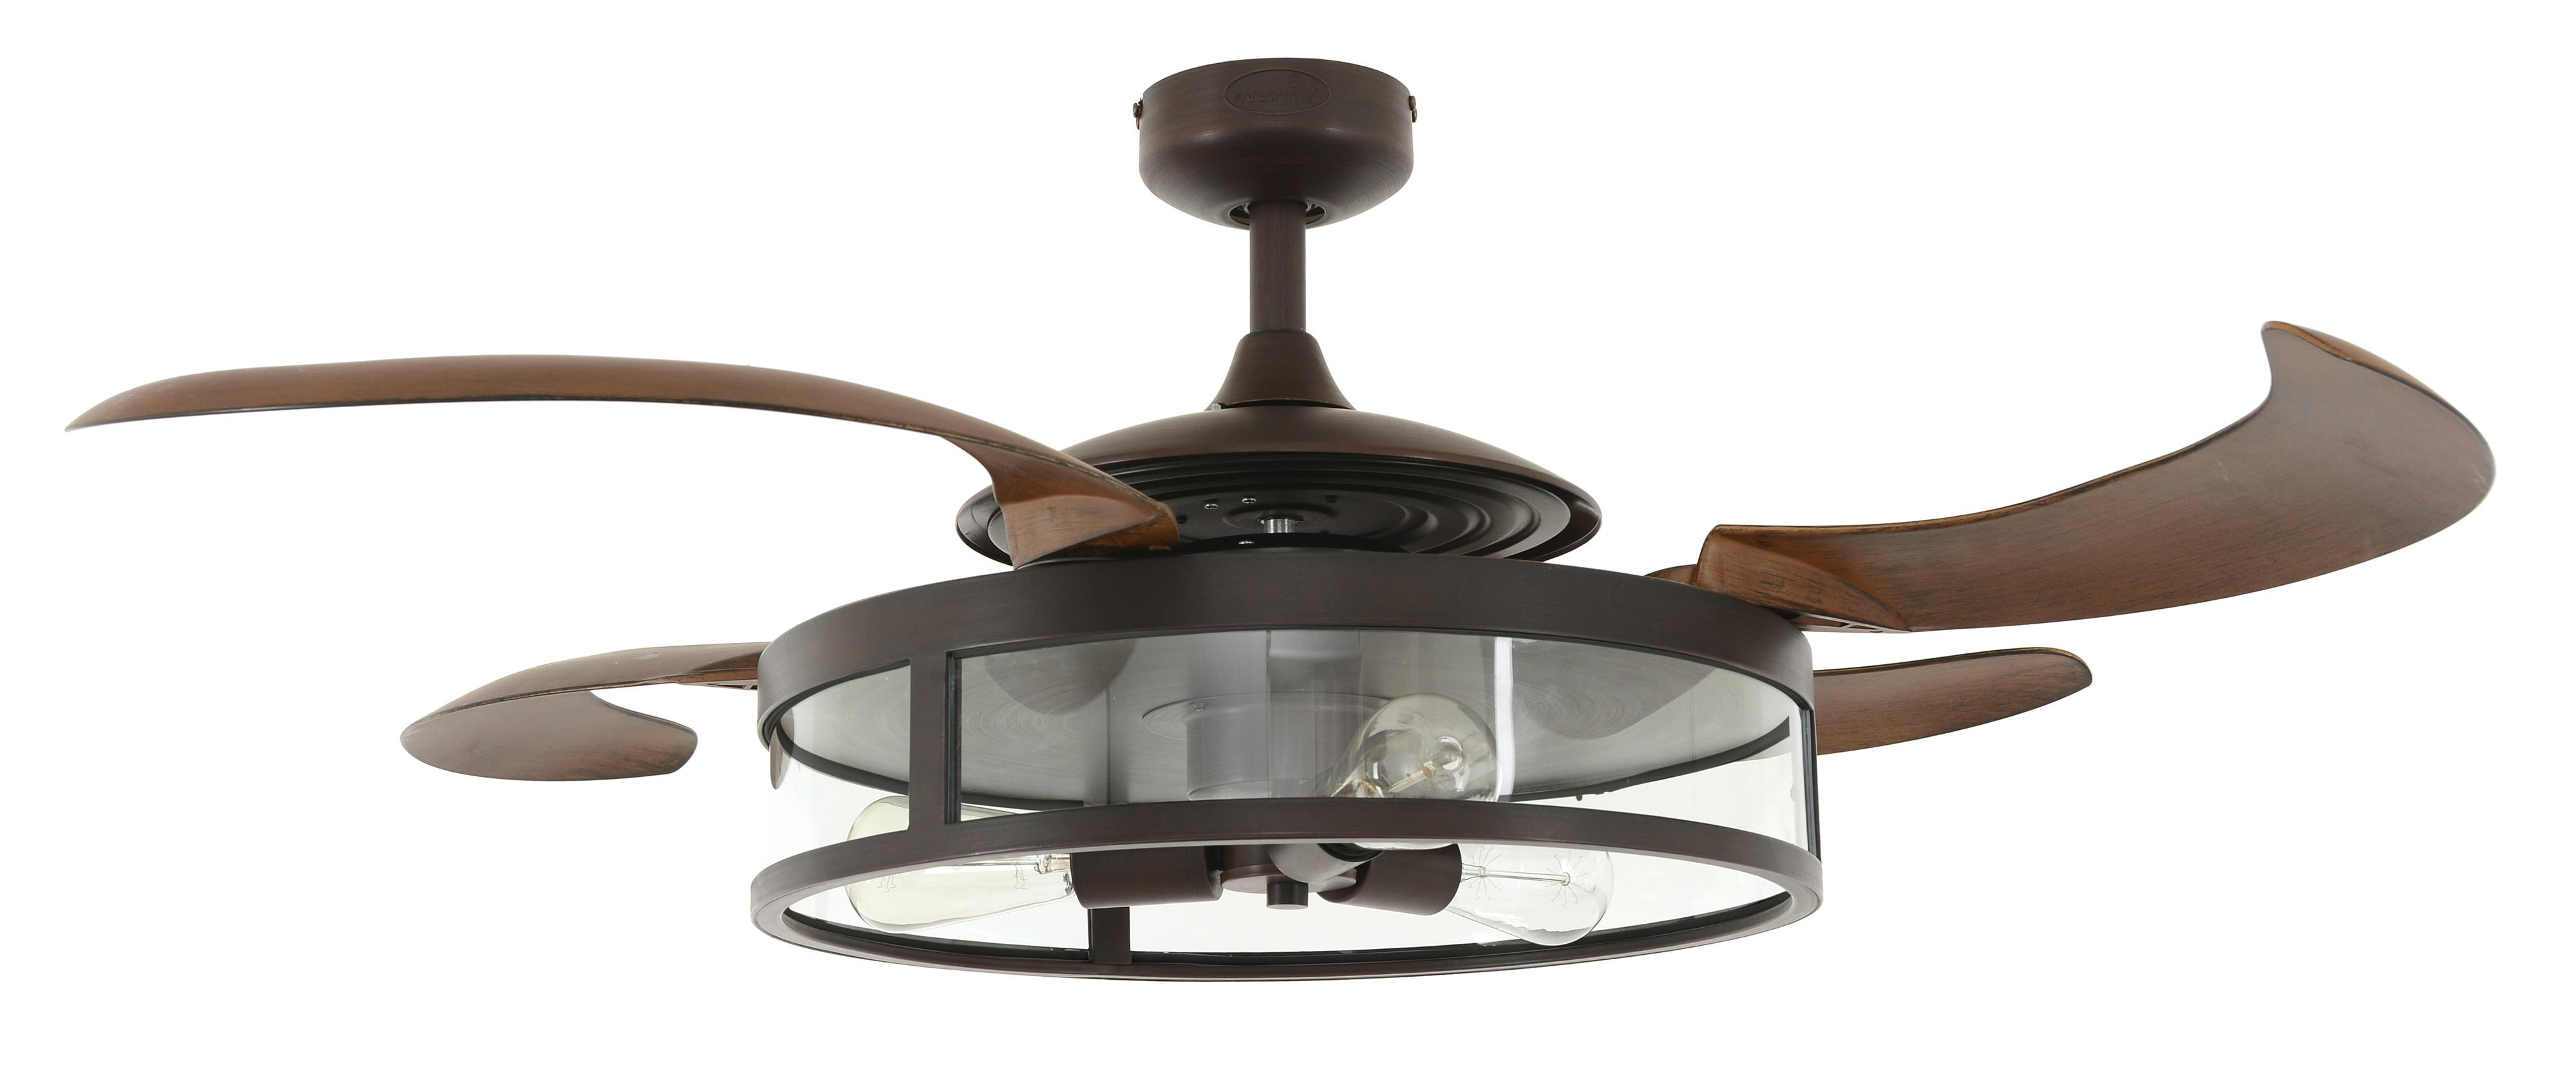 Retractable blade ceiling fan Fanaway Classic Bronze Ceiling fans ...